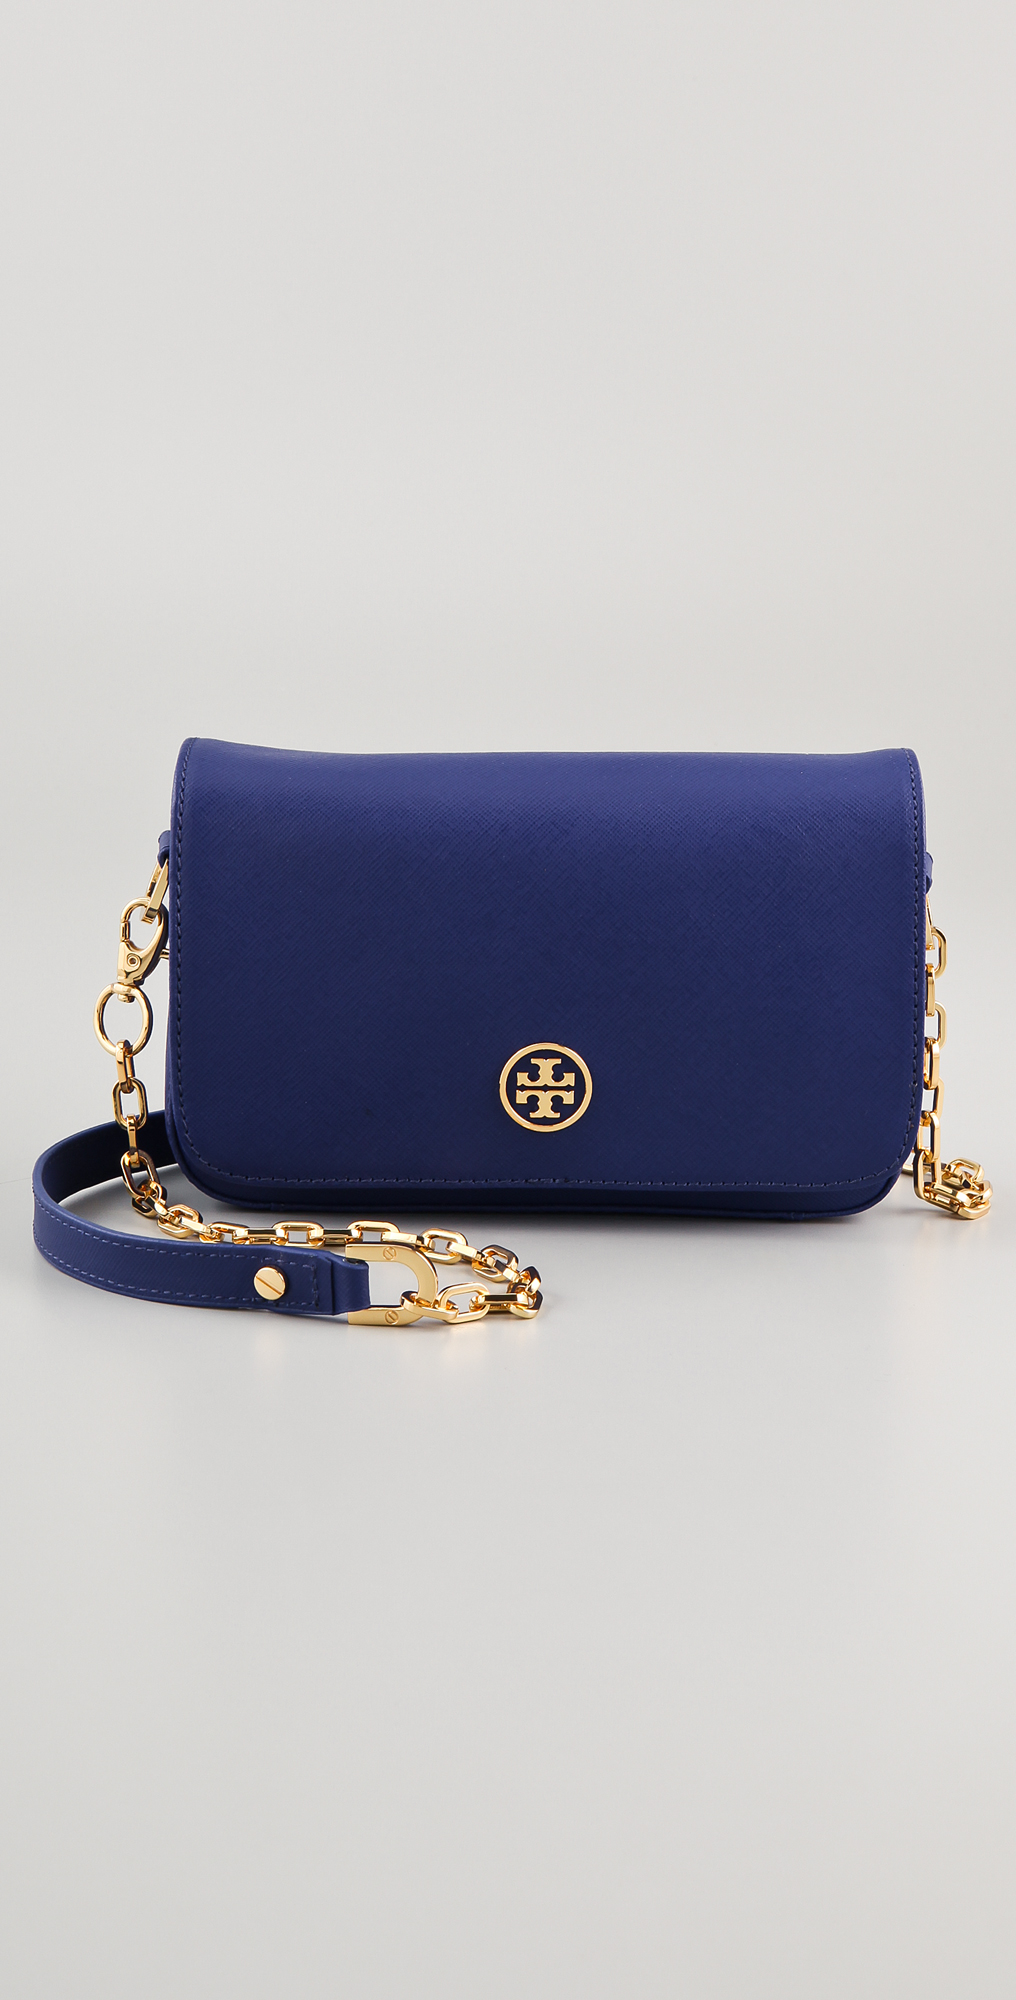 Tory Burch Robinson Mini Bag  6d23fa4a0